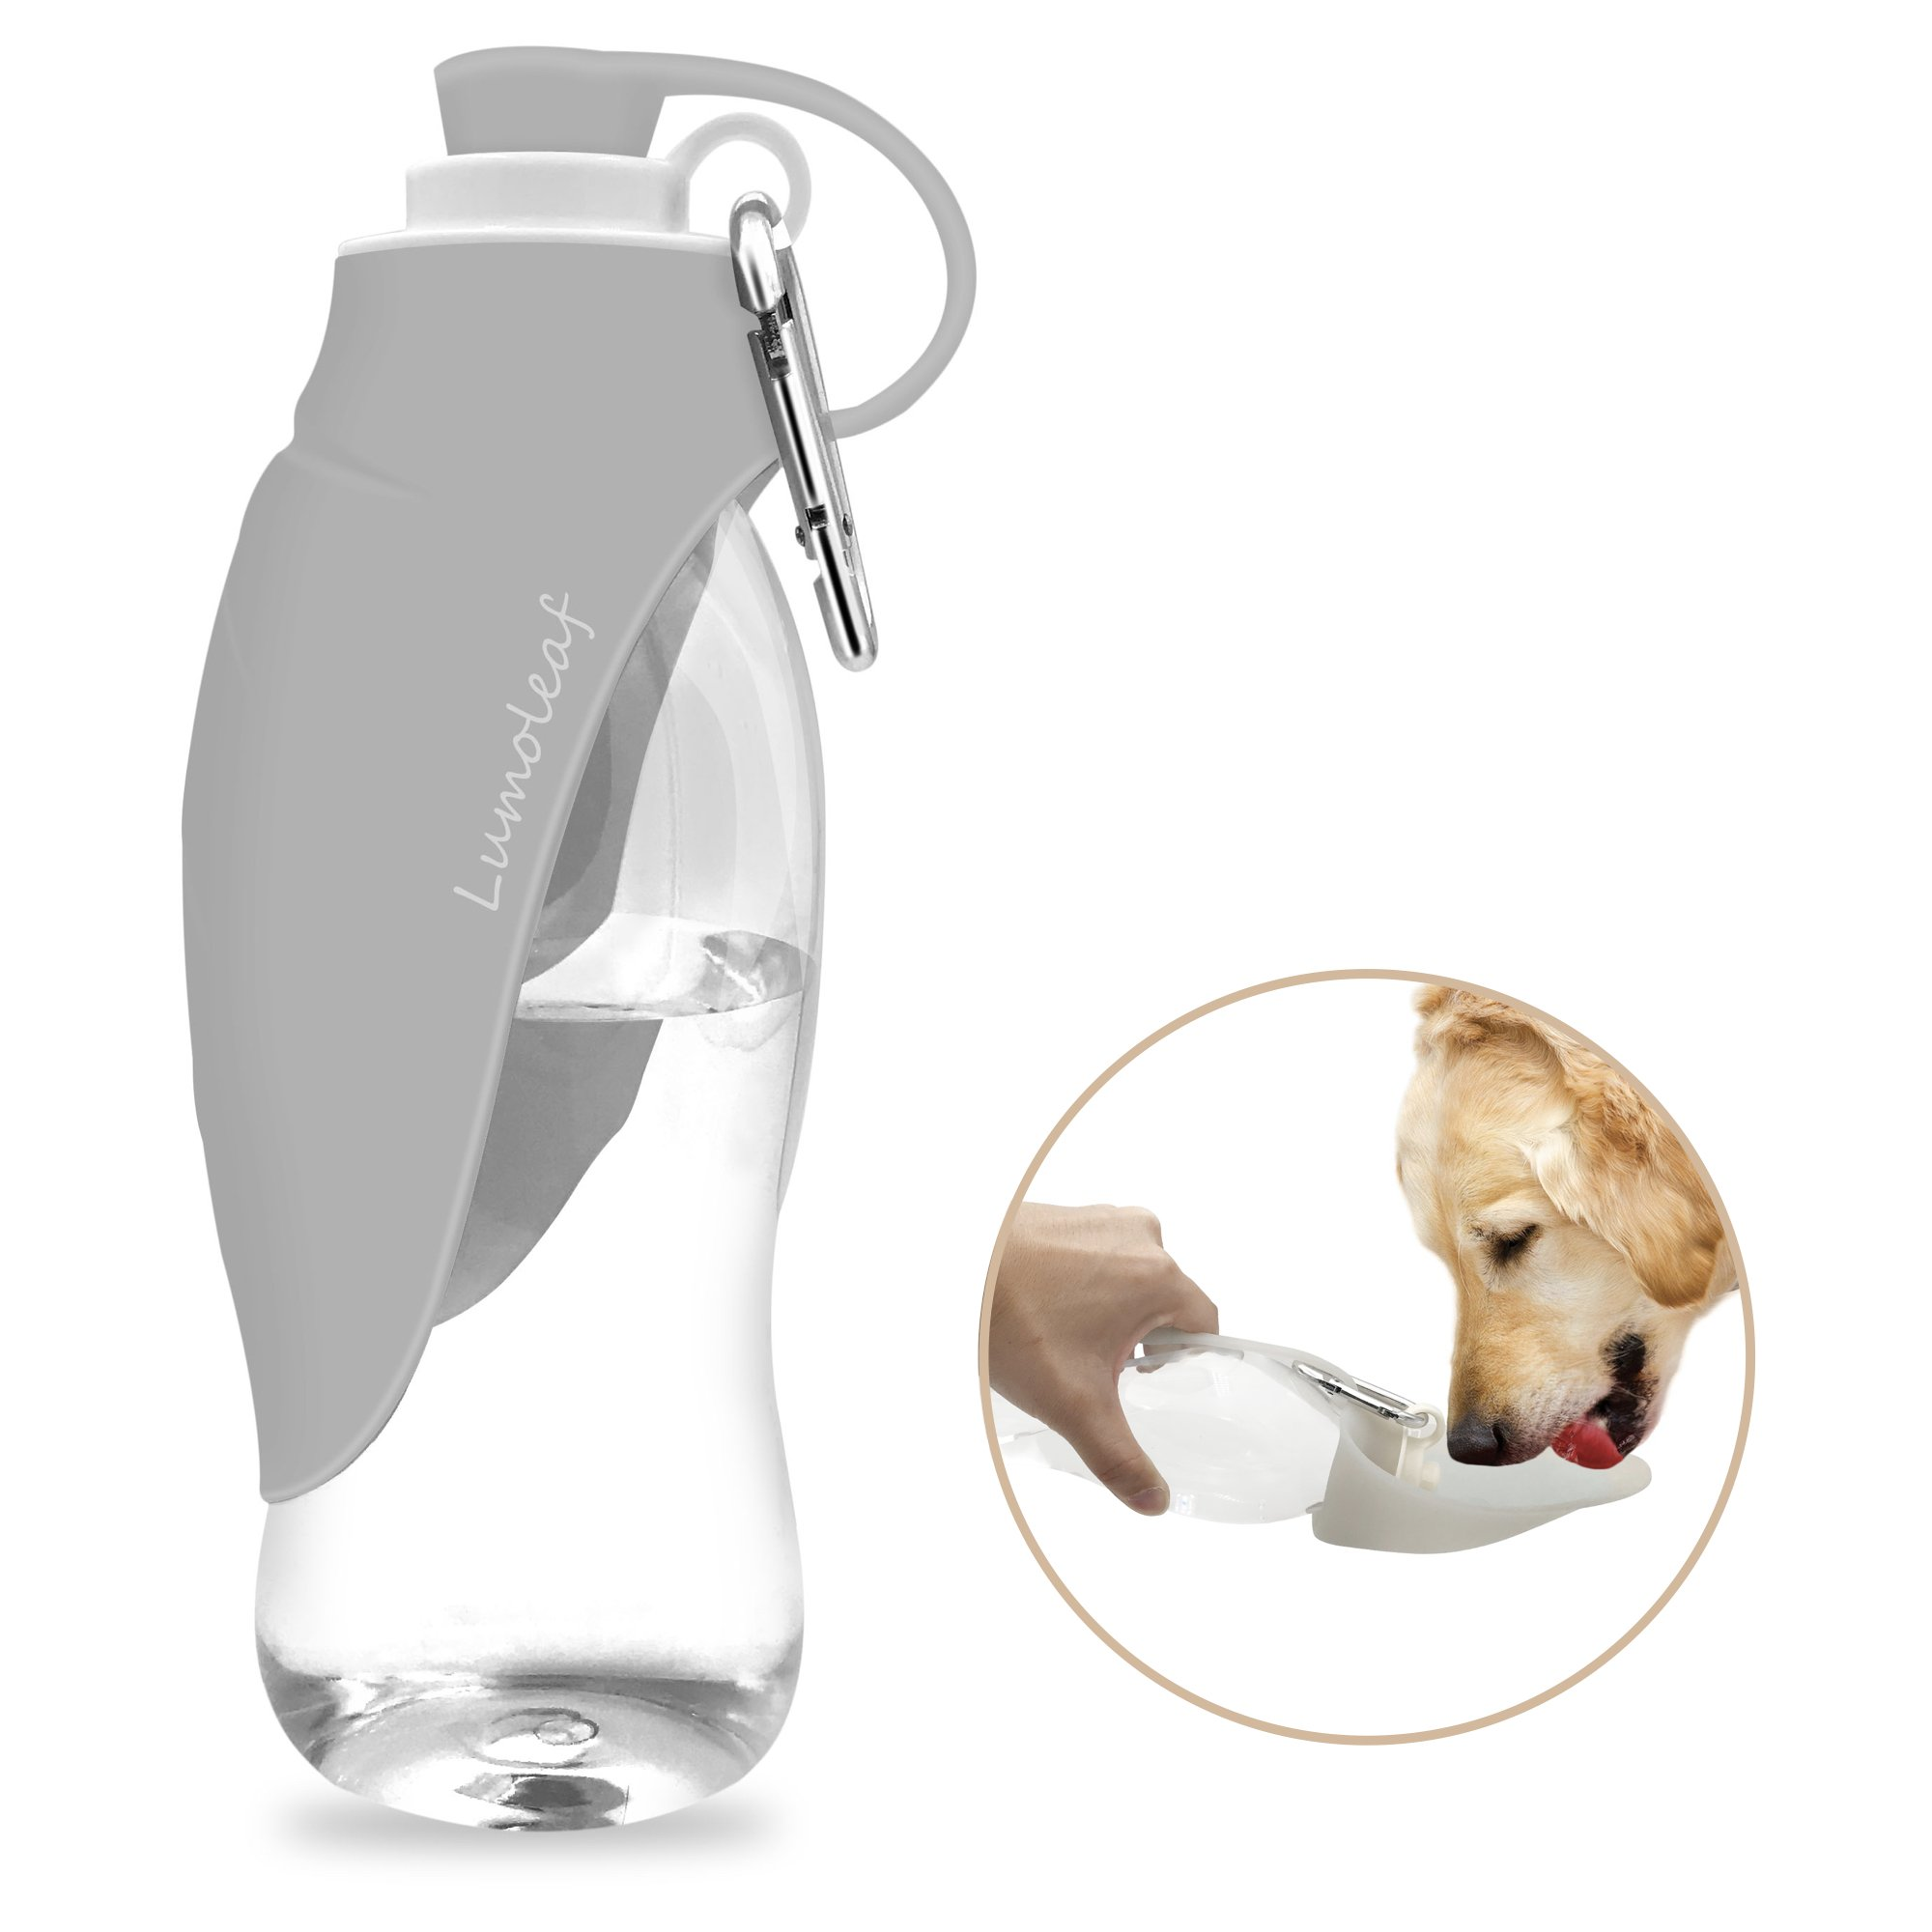 LumoLeaf Portable Pet Water Bottle by, Reversible & Lightweight Water Dispenser for Dogs and Cats, Made of Food-Grade Silicone (20 Oz) - Grey by LumoLeaf (Image #1)